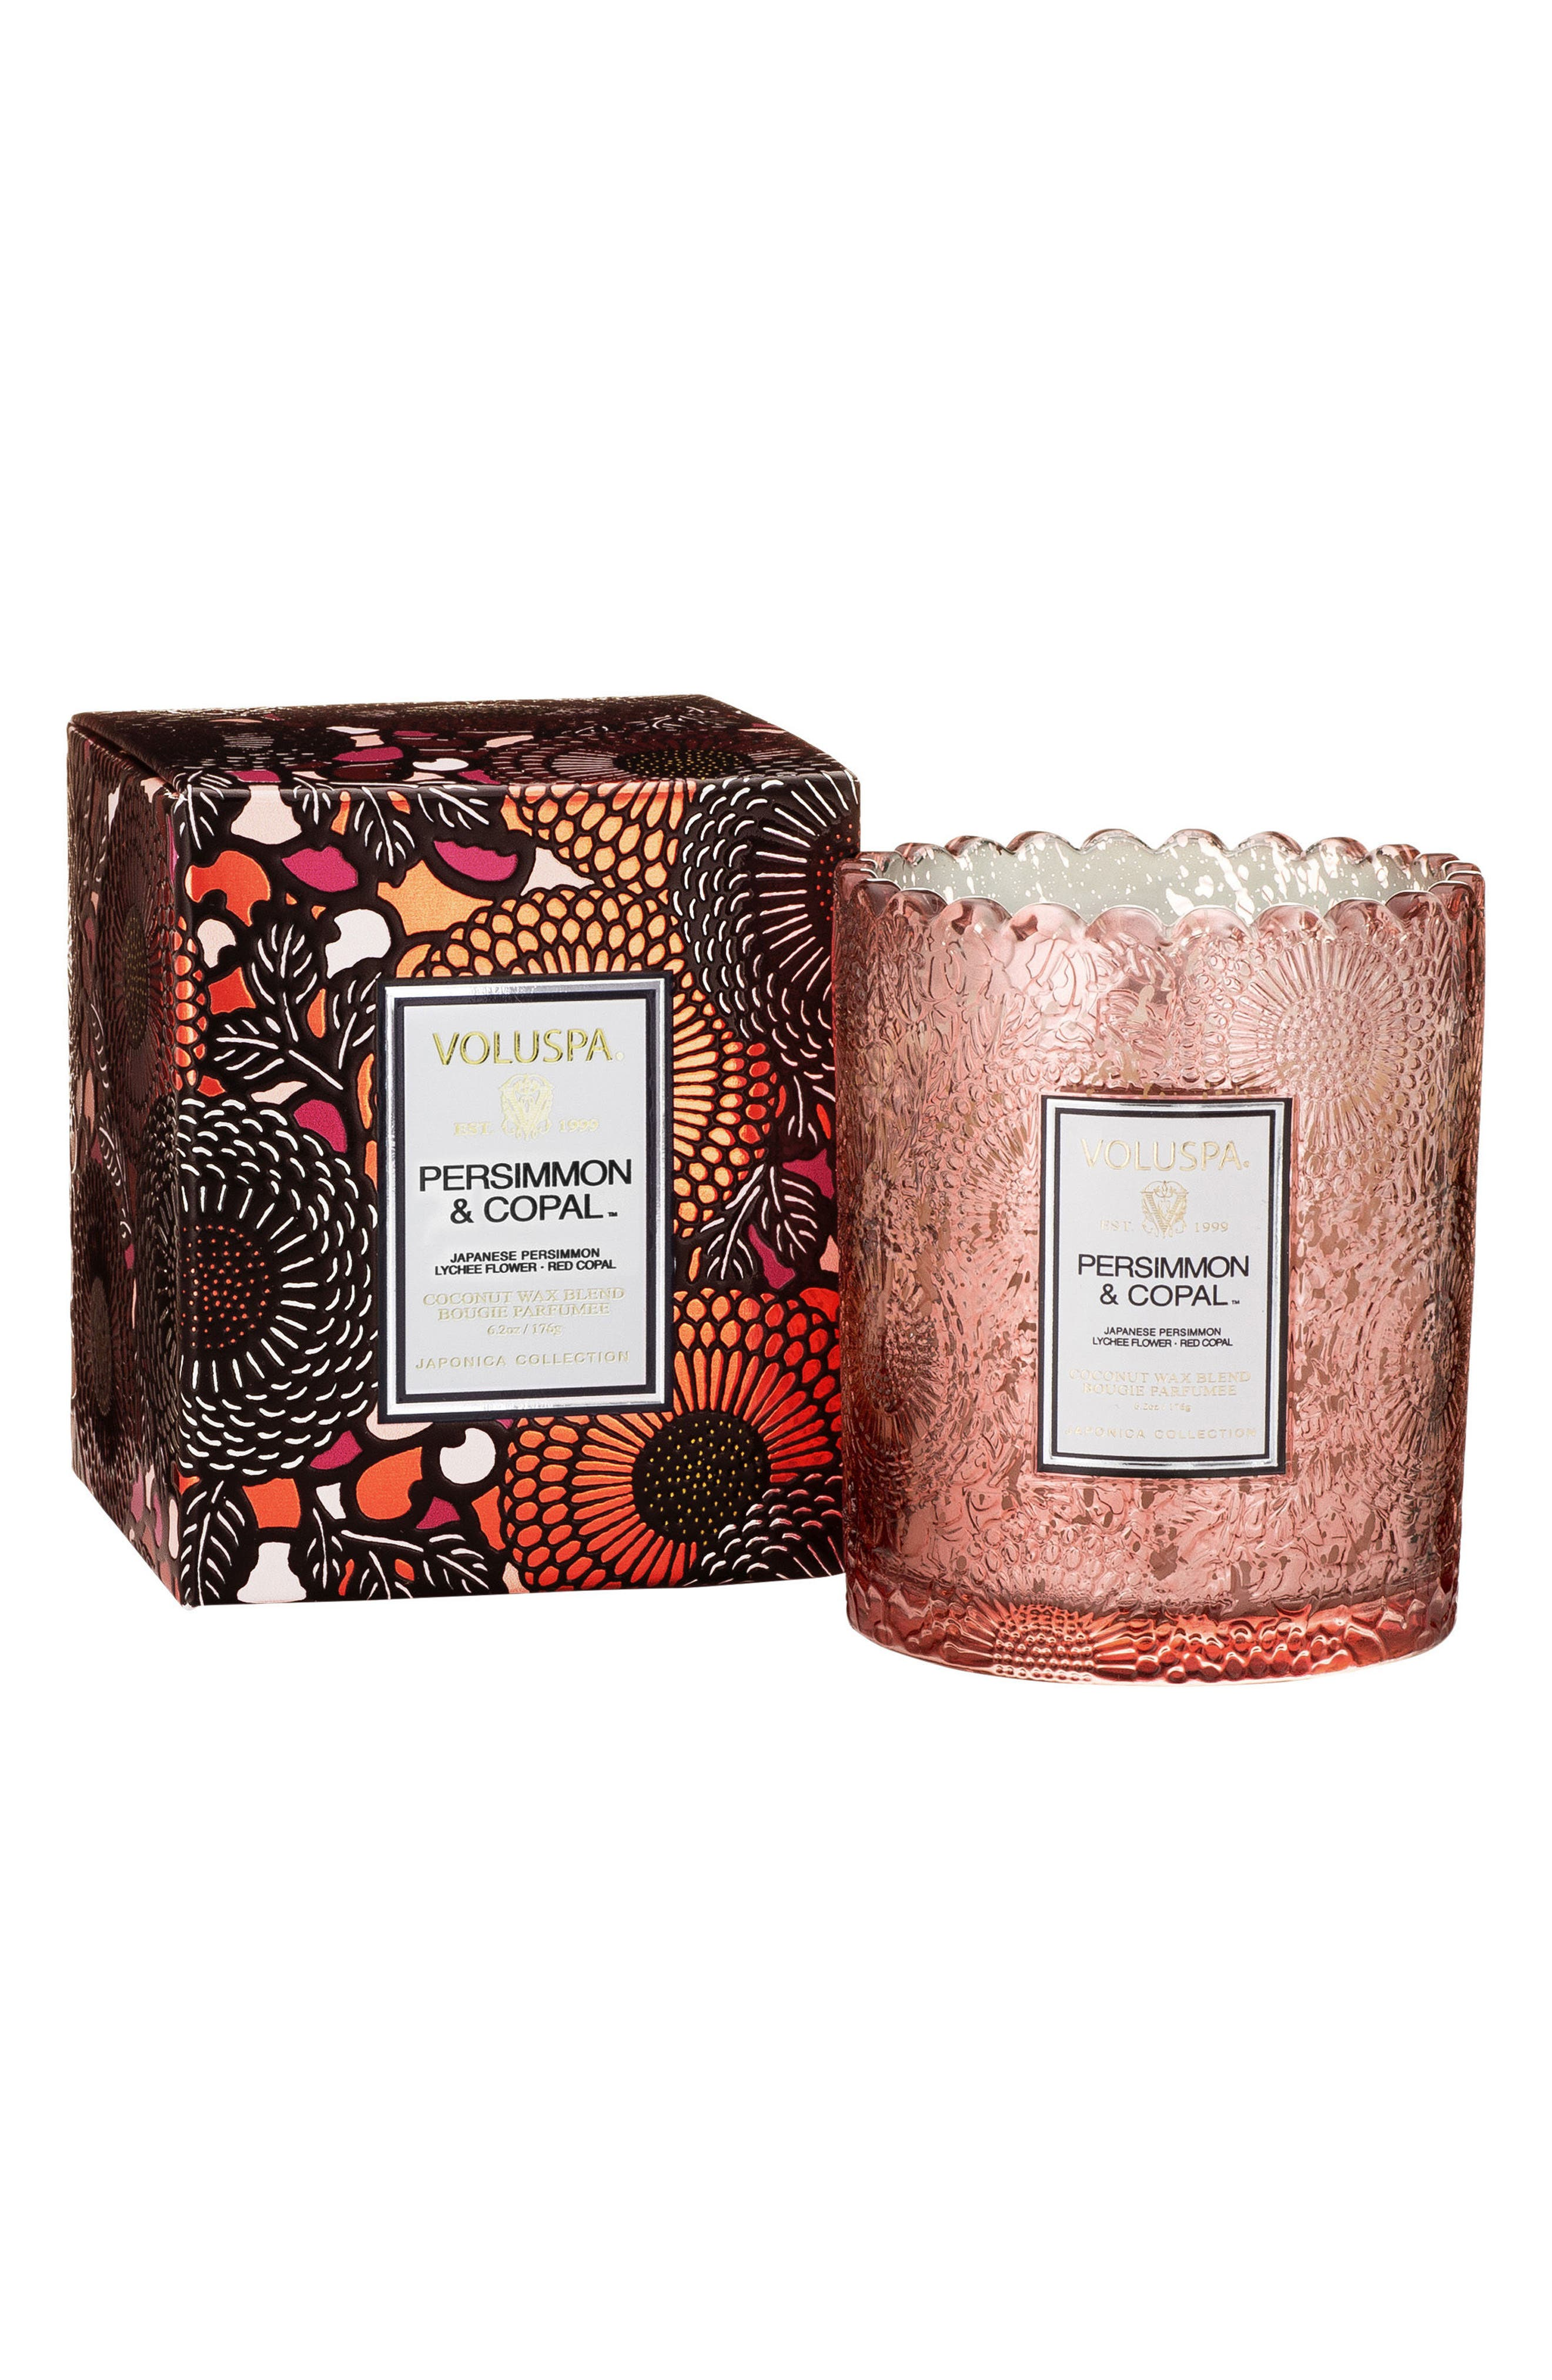 Alternate Image 1 Selected - Voluspa Japonica - Persimmon & Copal Scalloped Edge Glass Candle